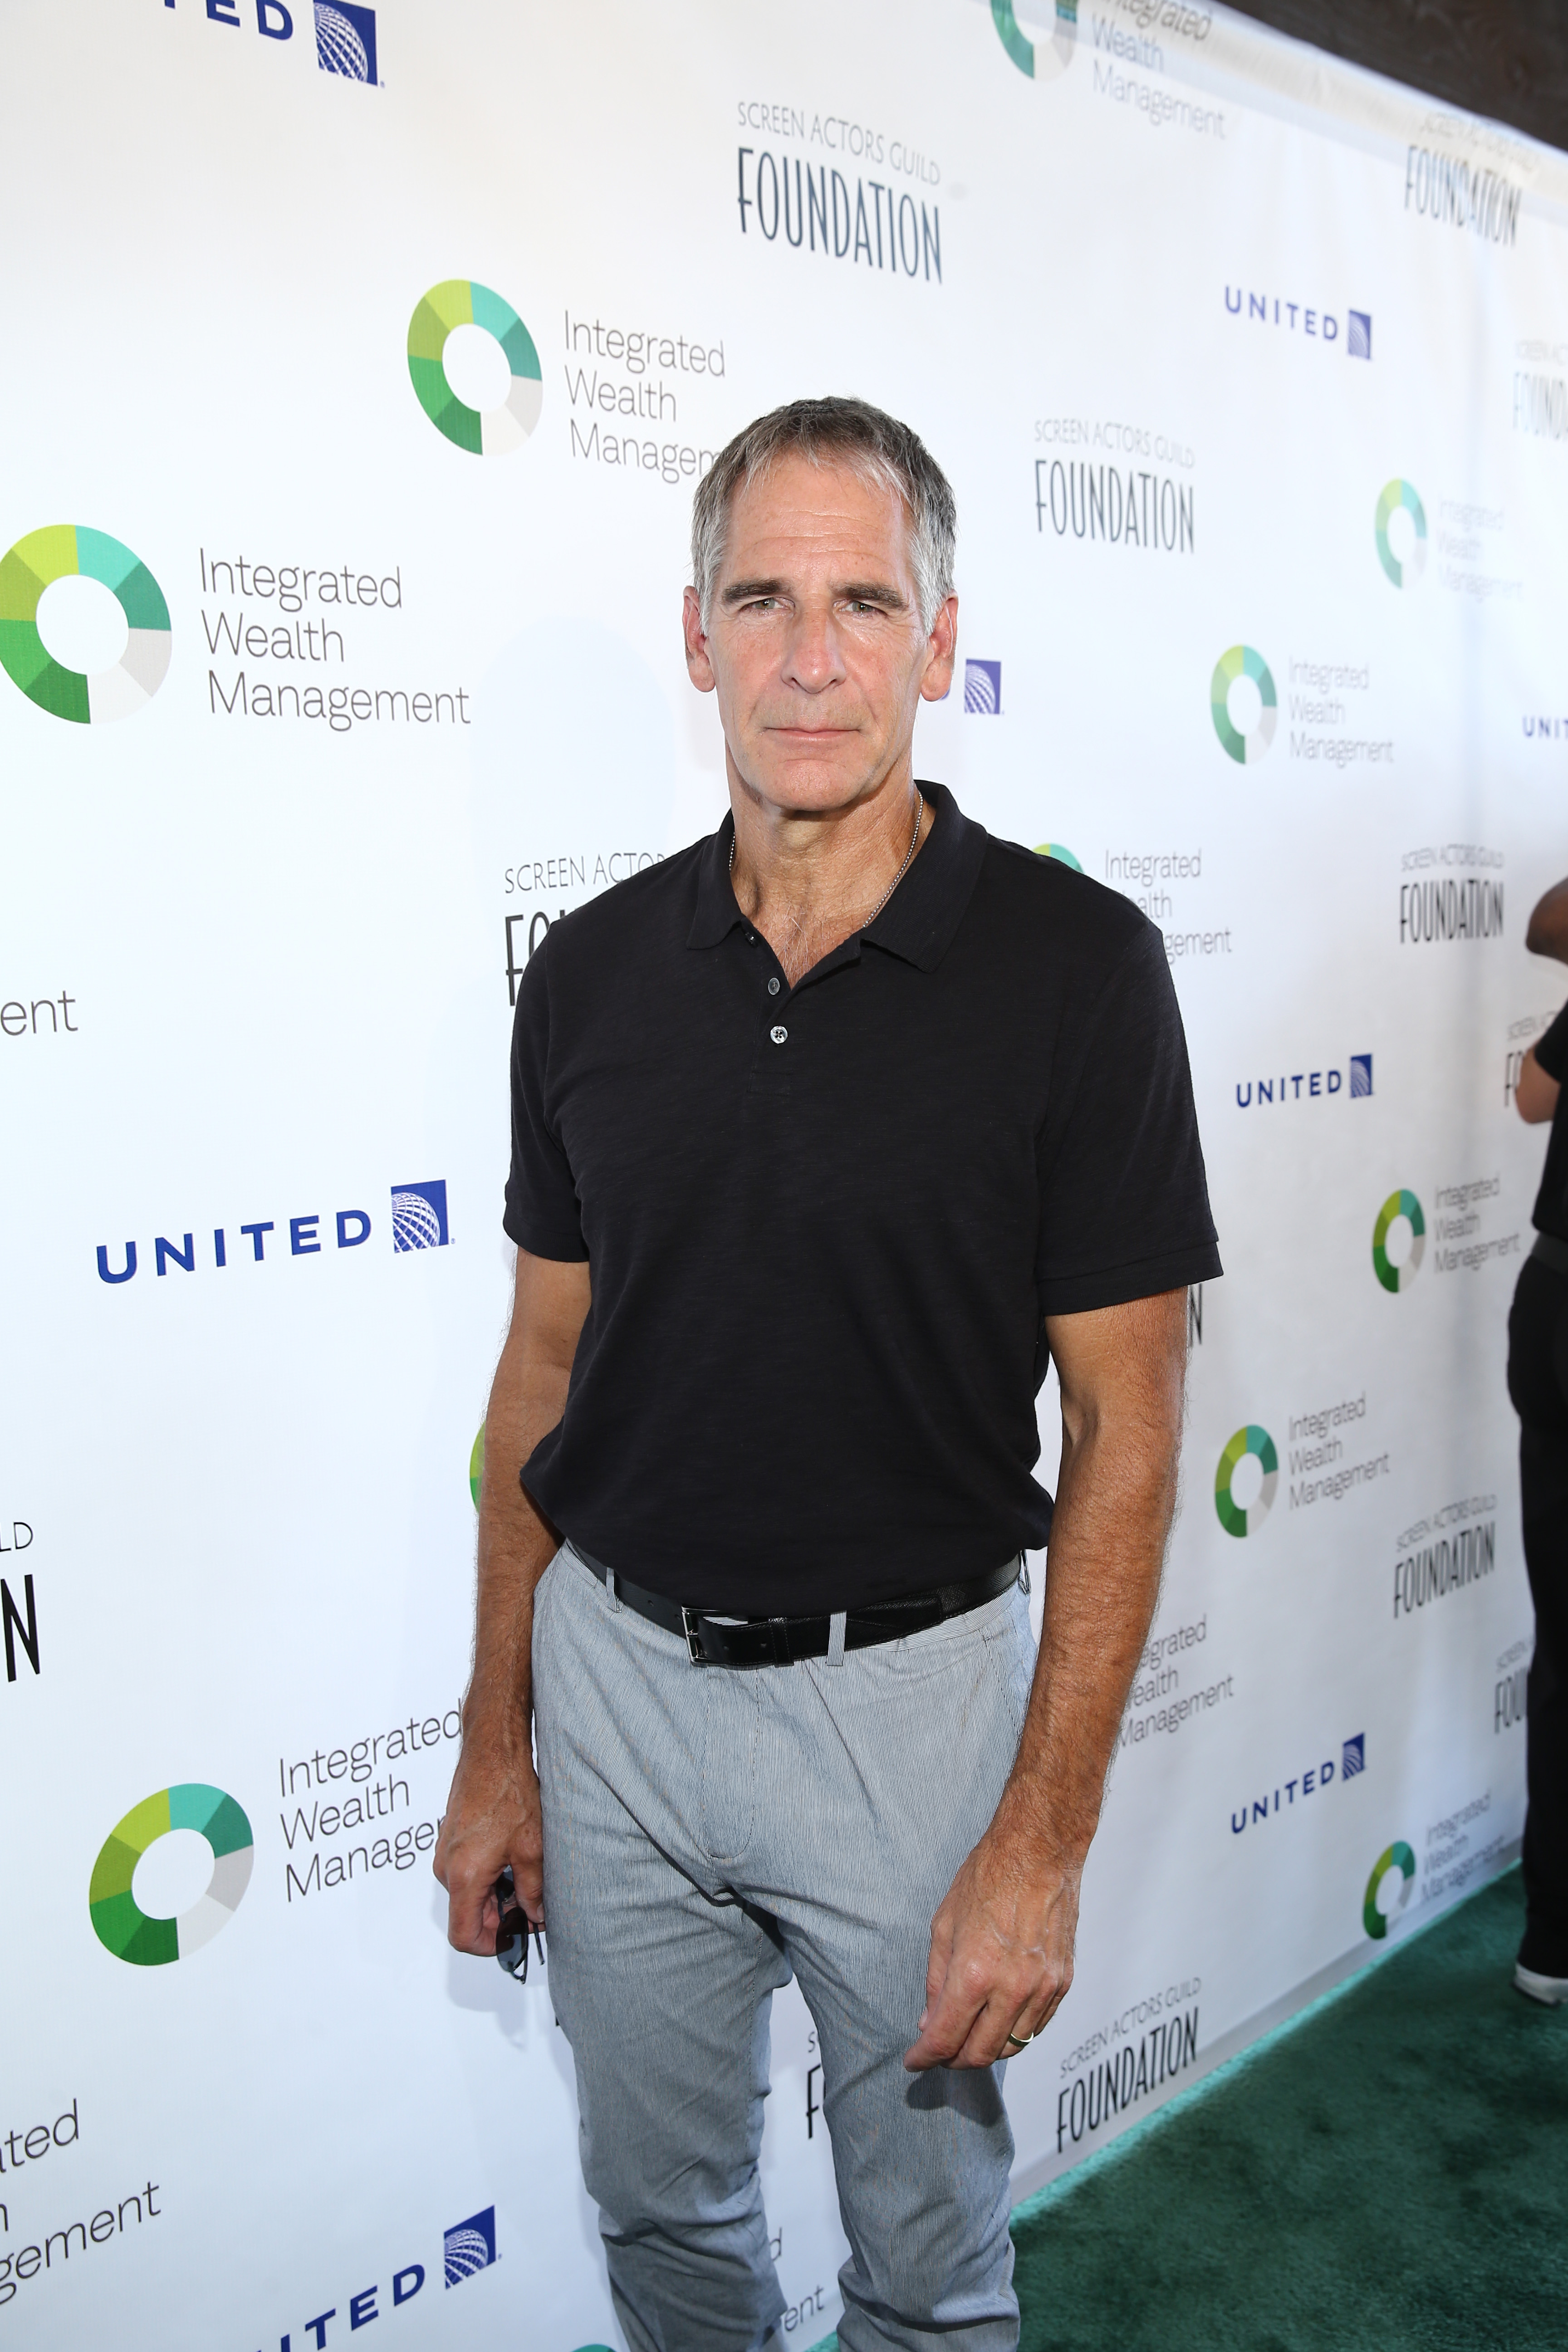 Scott Bakula attends The Screen Actors Guild Foundation's 6th Annual Los Angeles Golf Classic on June 8, 2015 in Burbank, California. (Photo by Mark Davis/Getty Images for The Screen Actors Guild Foundation)